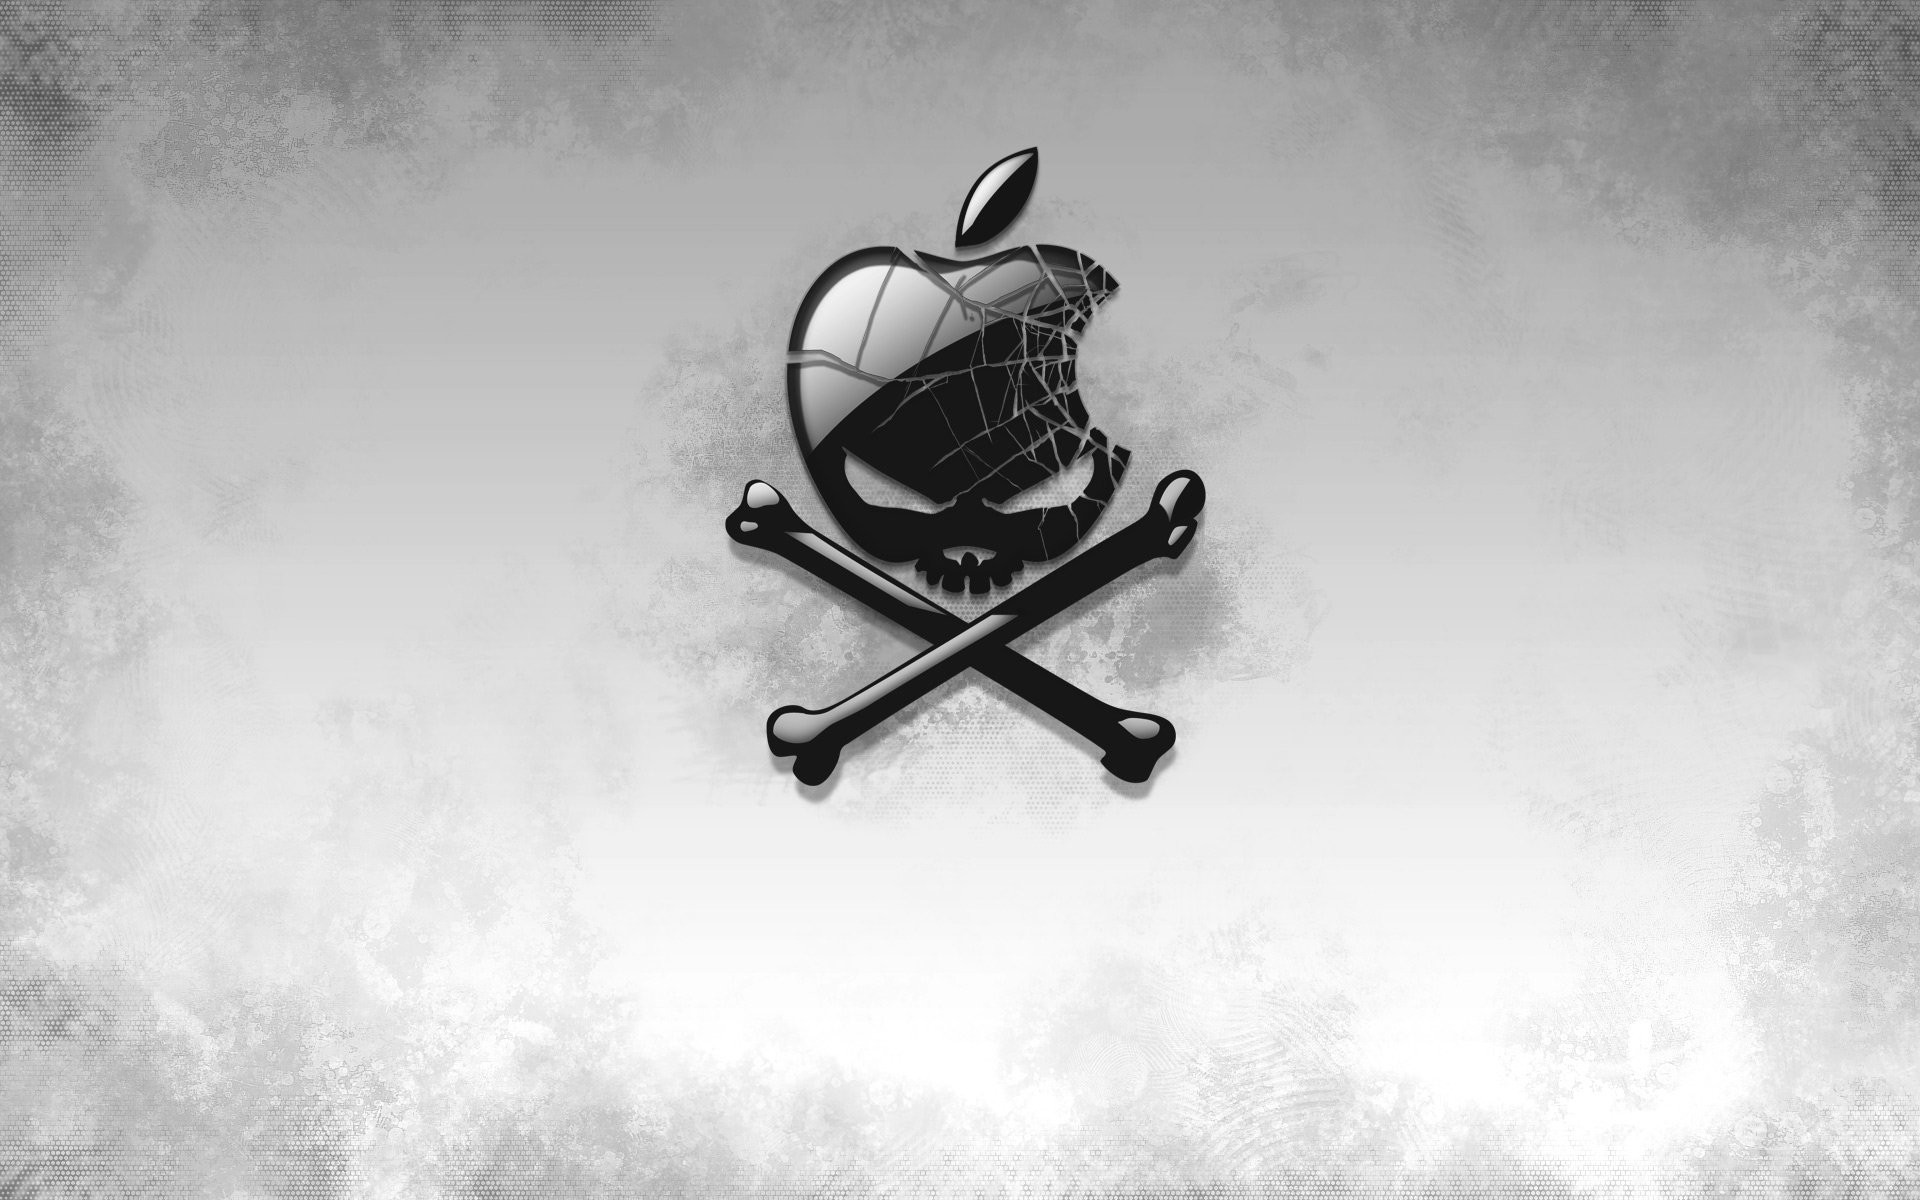 apple wallpaper hd 1080p ·①